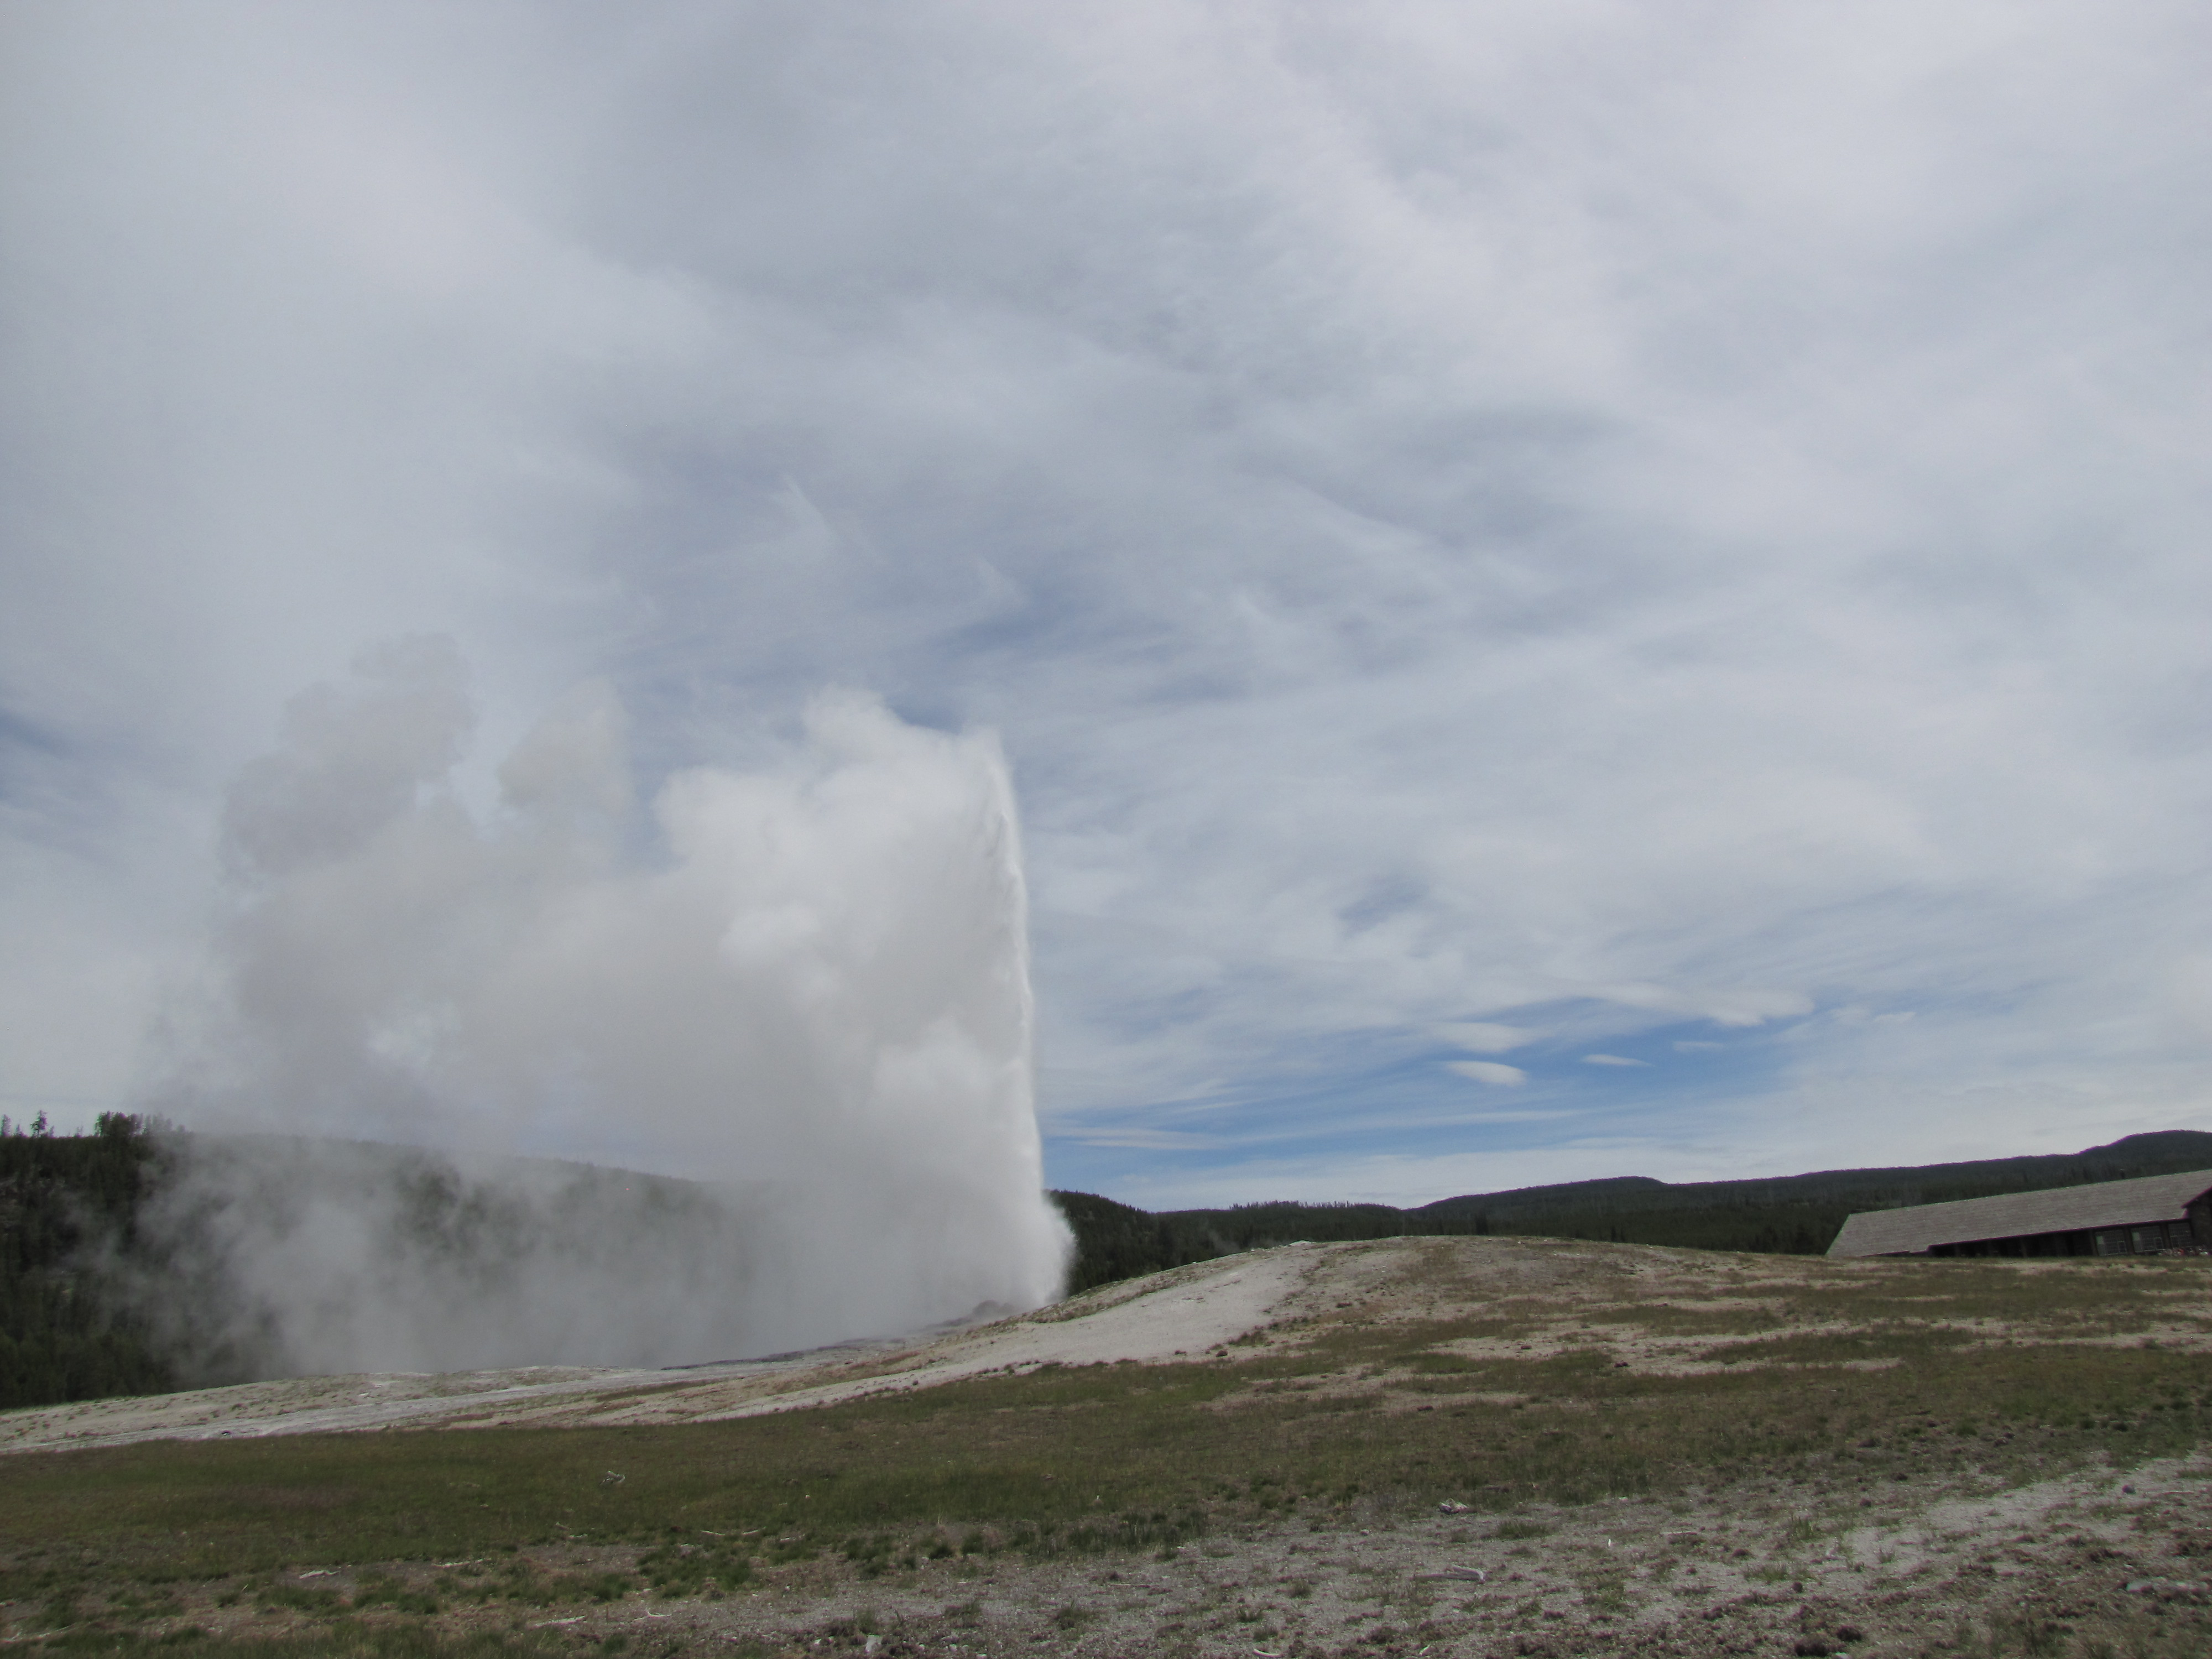 Old Faithful erupts on a cloudy June day. I found a spot near the edge of the boardwalk so my view was not obstructed.